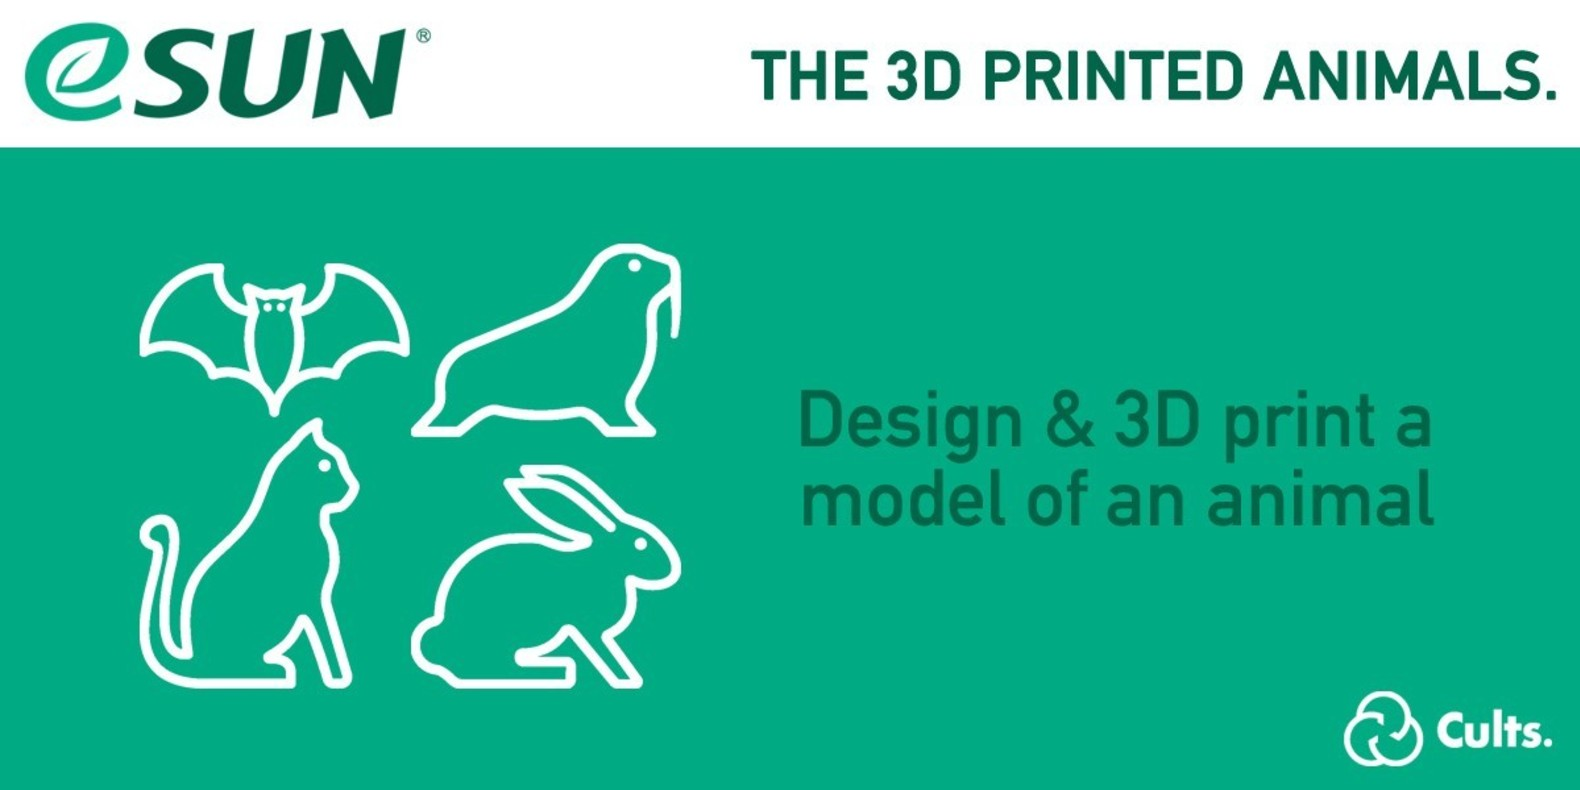 New 3D printing contest in partnership with eSun !